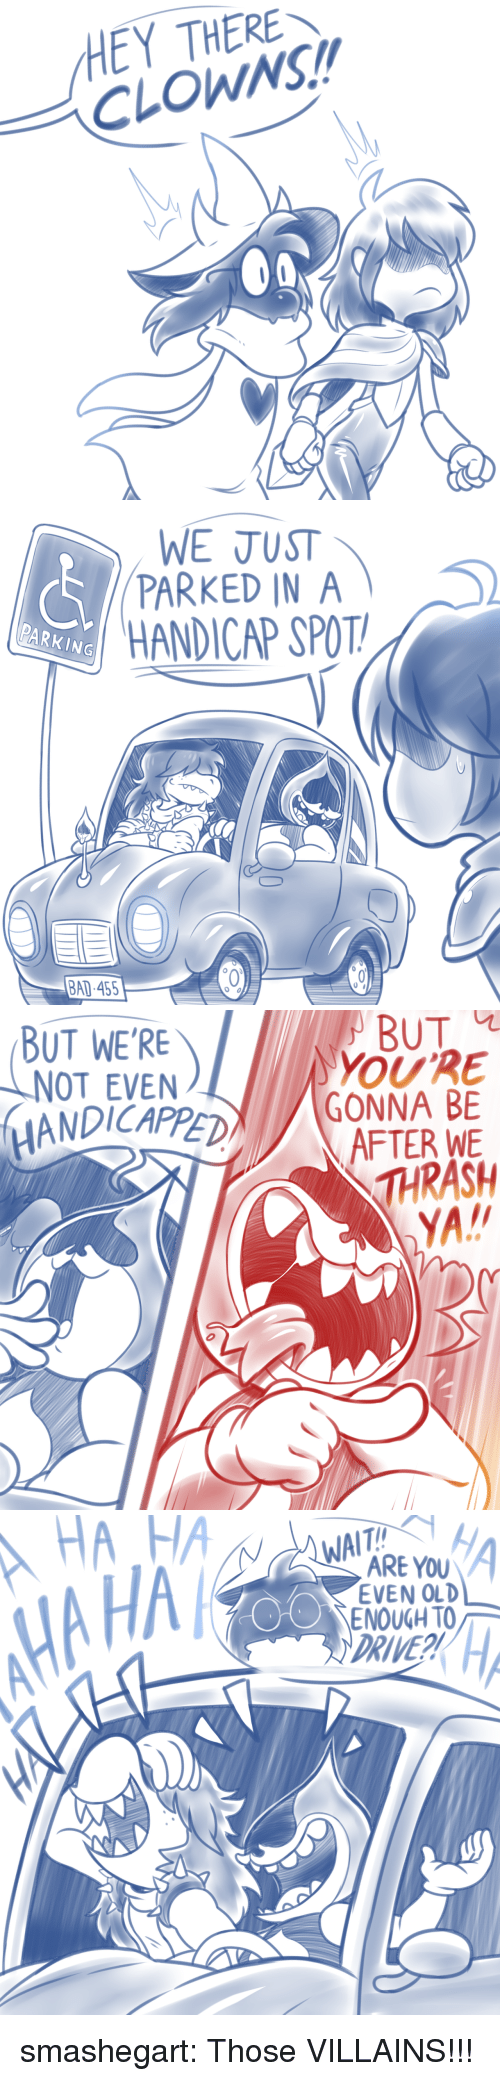 Bad, Target, and Tumblr: HEY THERE  CLOWNS!   WE JUST  PARKED IN A  HANDICAP SPOT  PARKING  BAD 455   BUT  BUT WE'RE  NOT EVEN  ANDICAPPED  AFTER WE  THRASH   WA  ARE YOU  EVEN OLD  OENOUGH TO  HA HA  DRIVE smashegart:  Those VILLAINS!!!